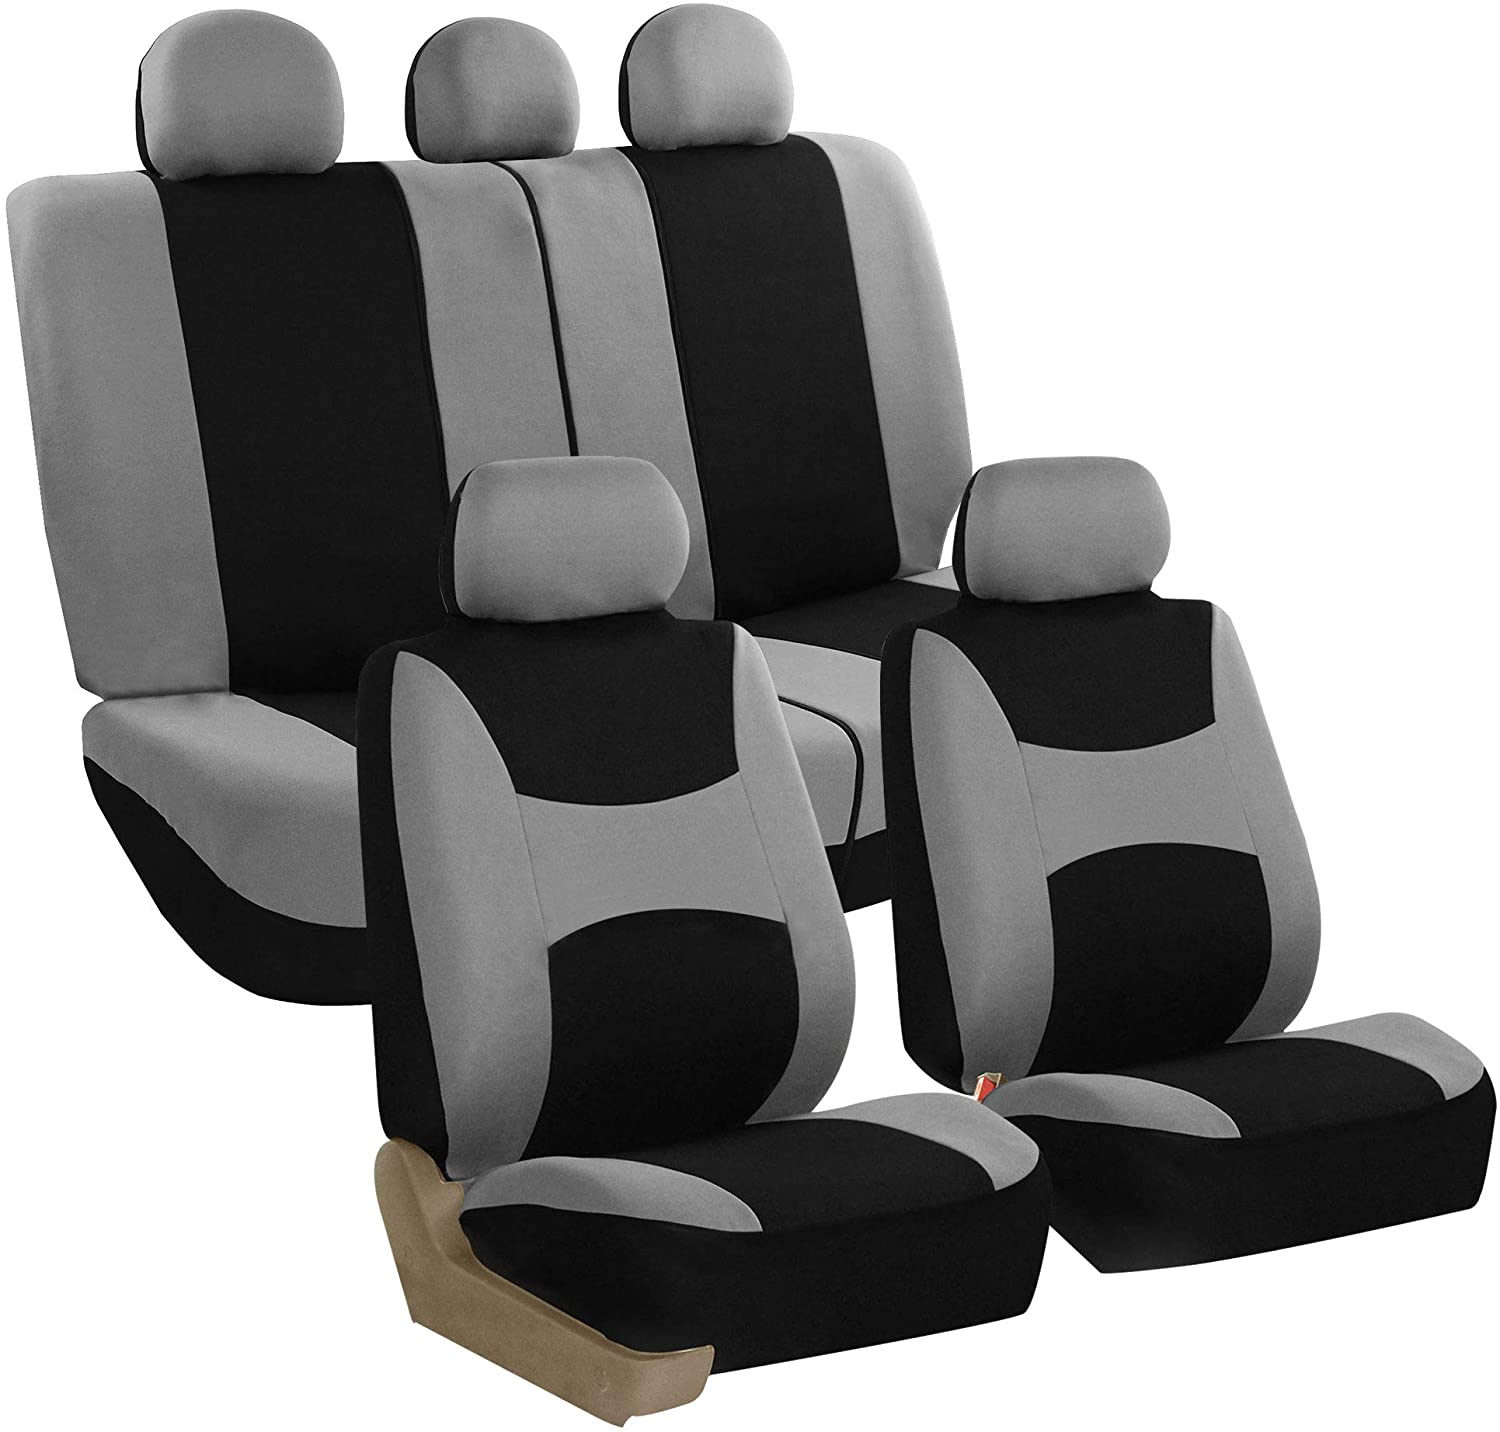 FH Group - FB030GRAYBLACK115-SEAT FB030GRAYBLACK115 full seat cover (Side Airbag Compatible with Split Bench Gray/Black)